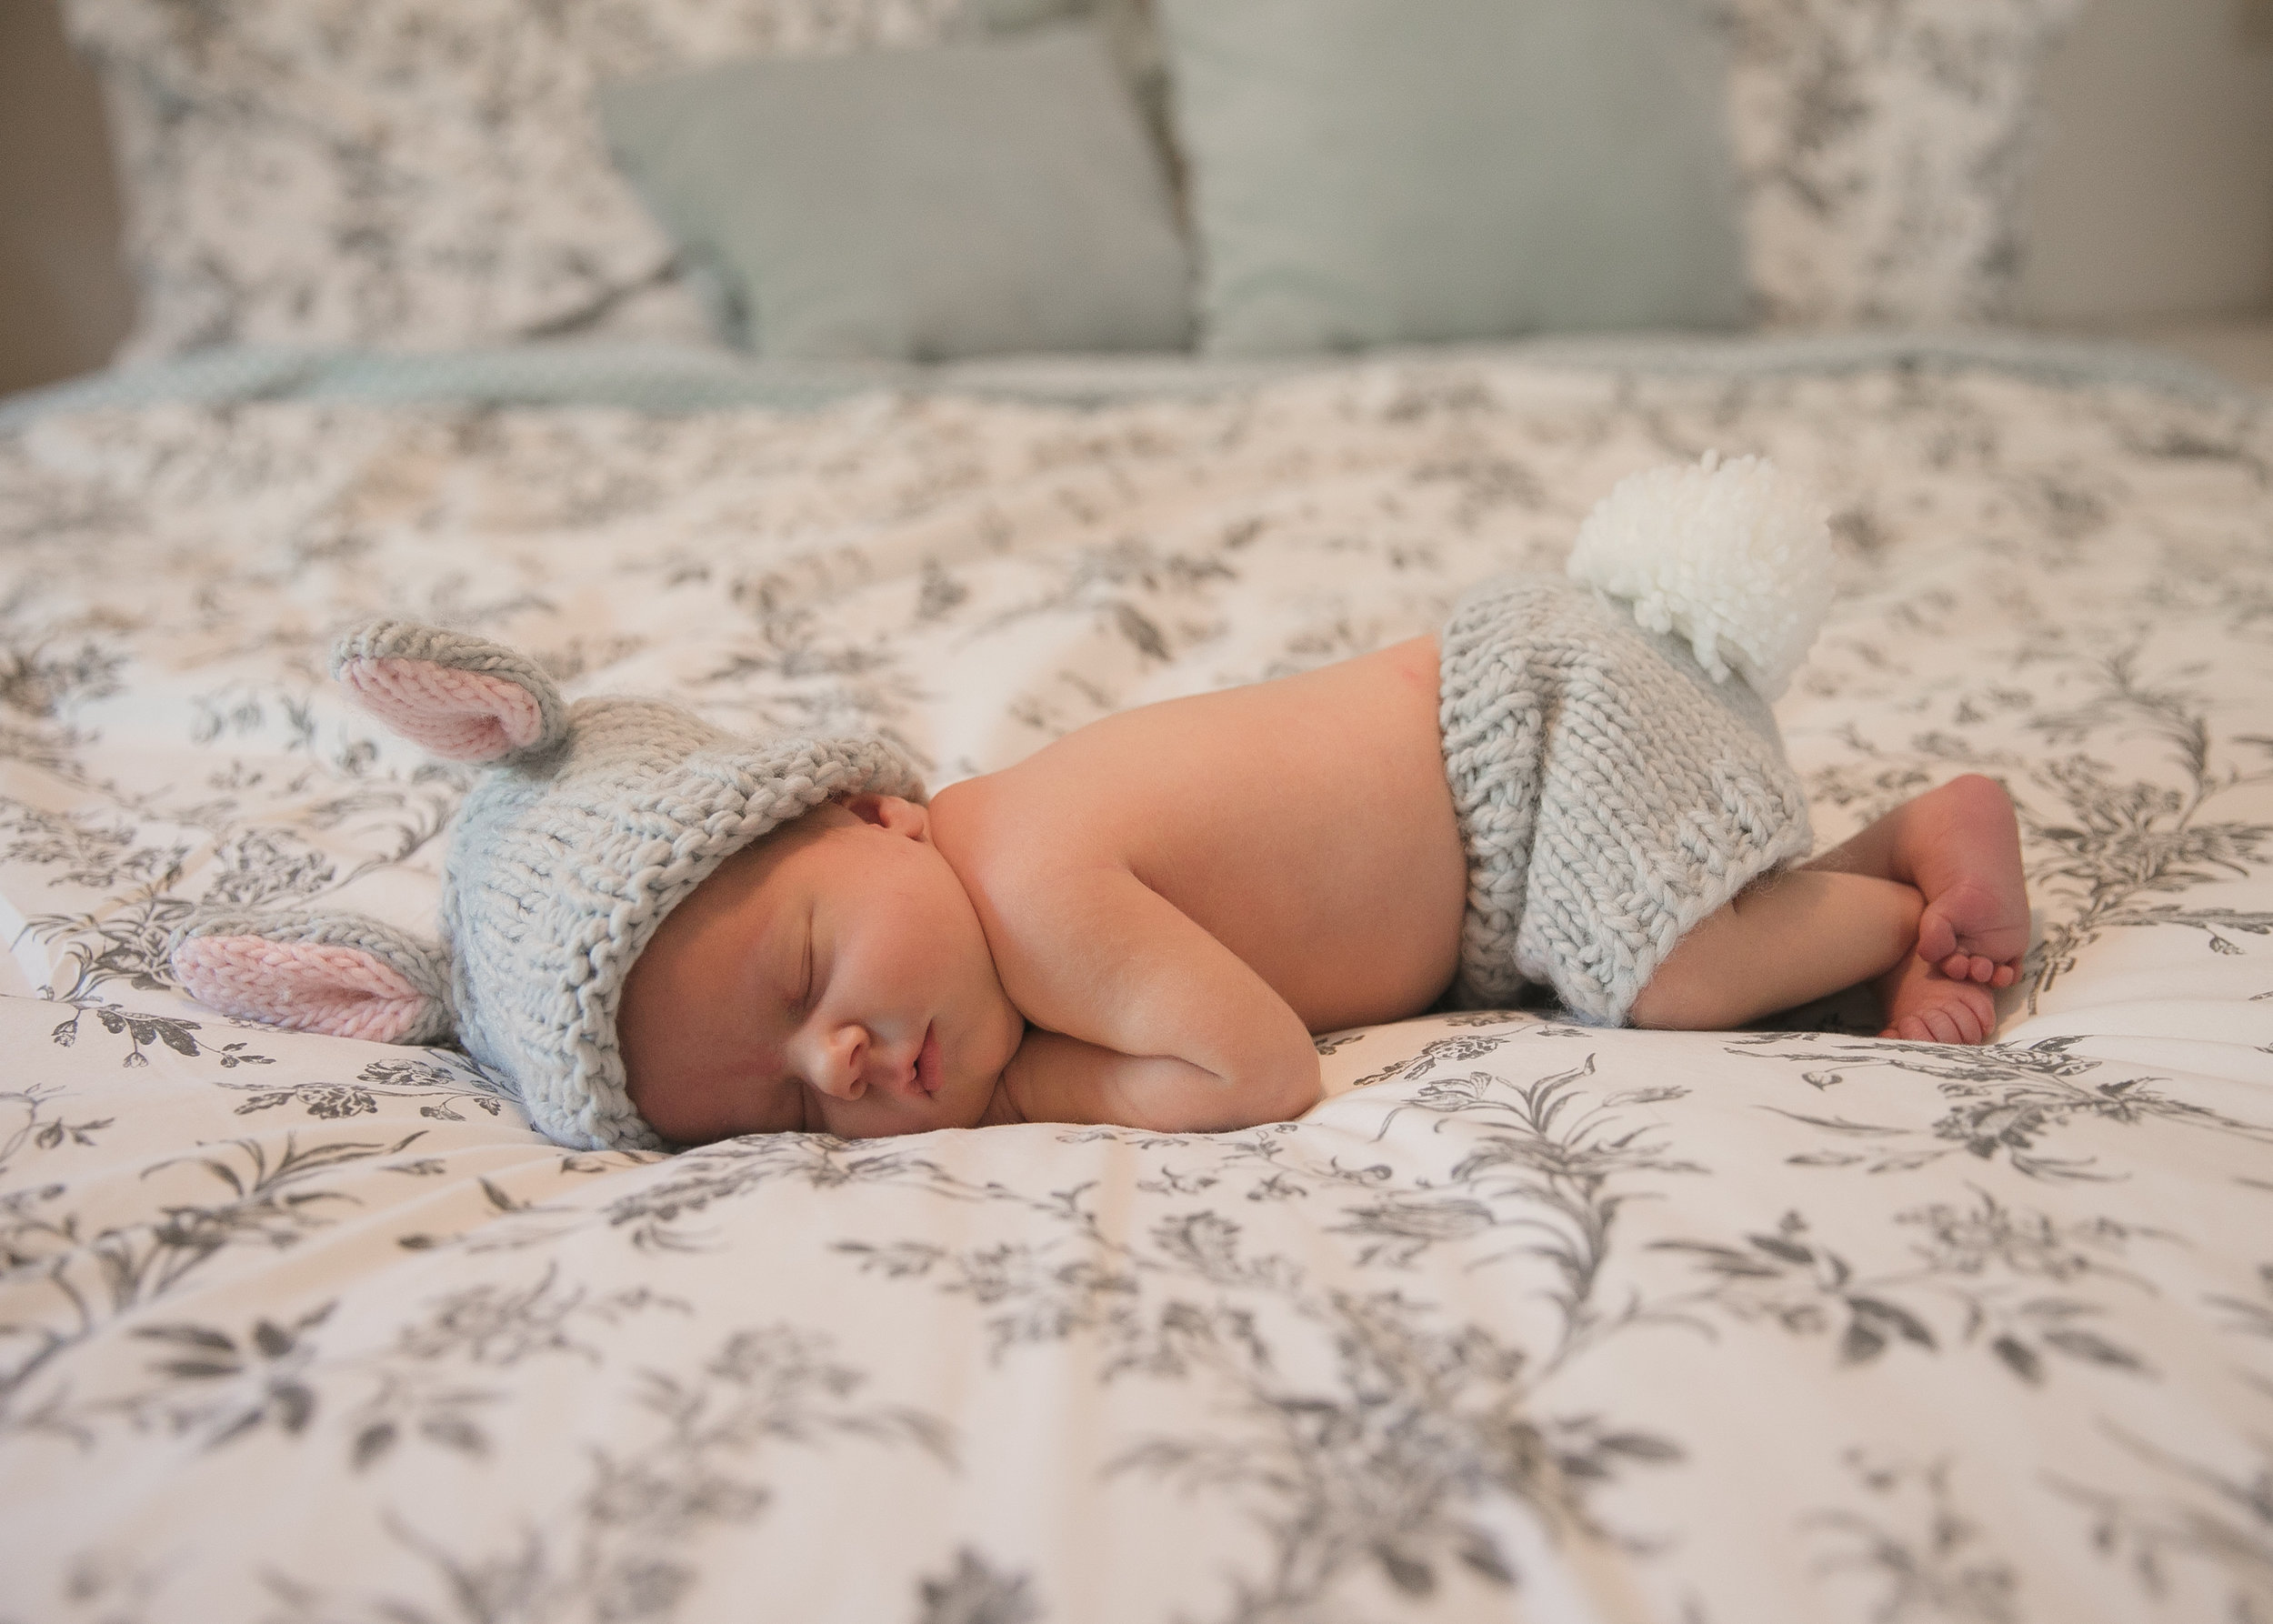 CrystalJessupPhotographynewborn (26 of 57).jpg